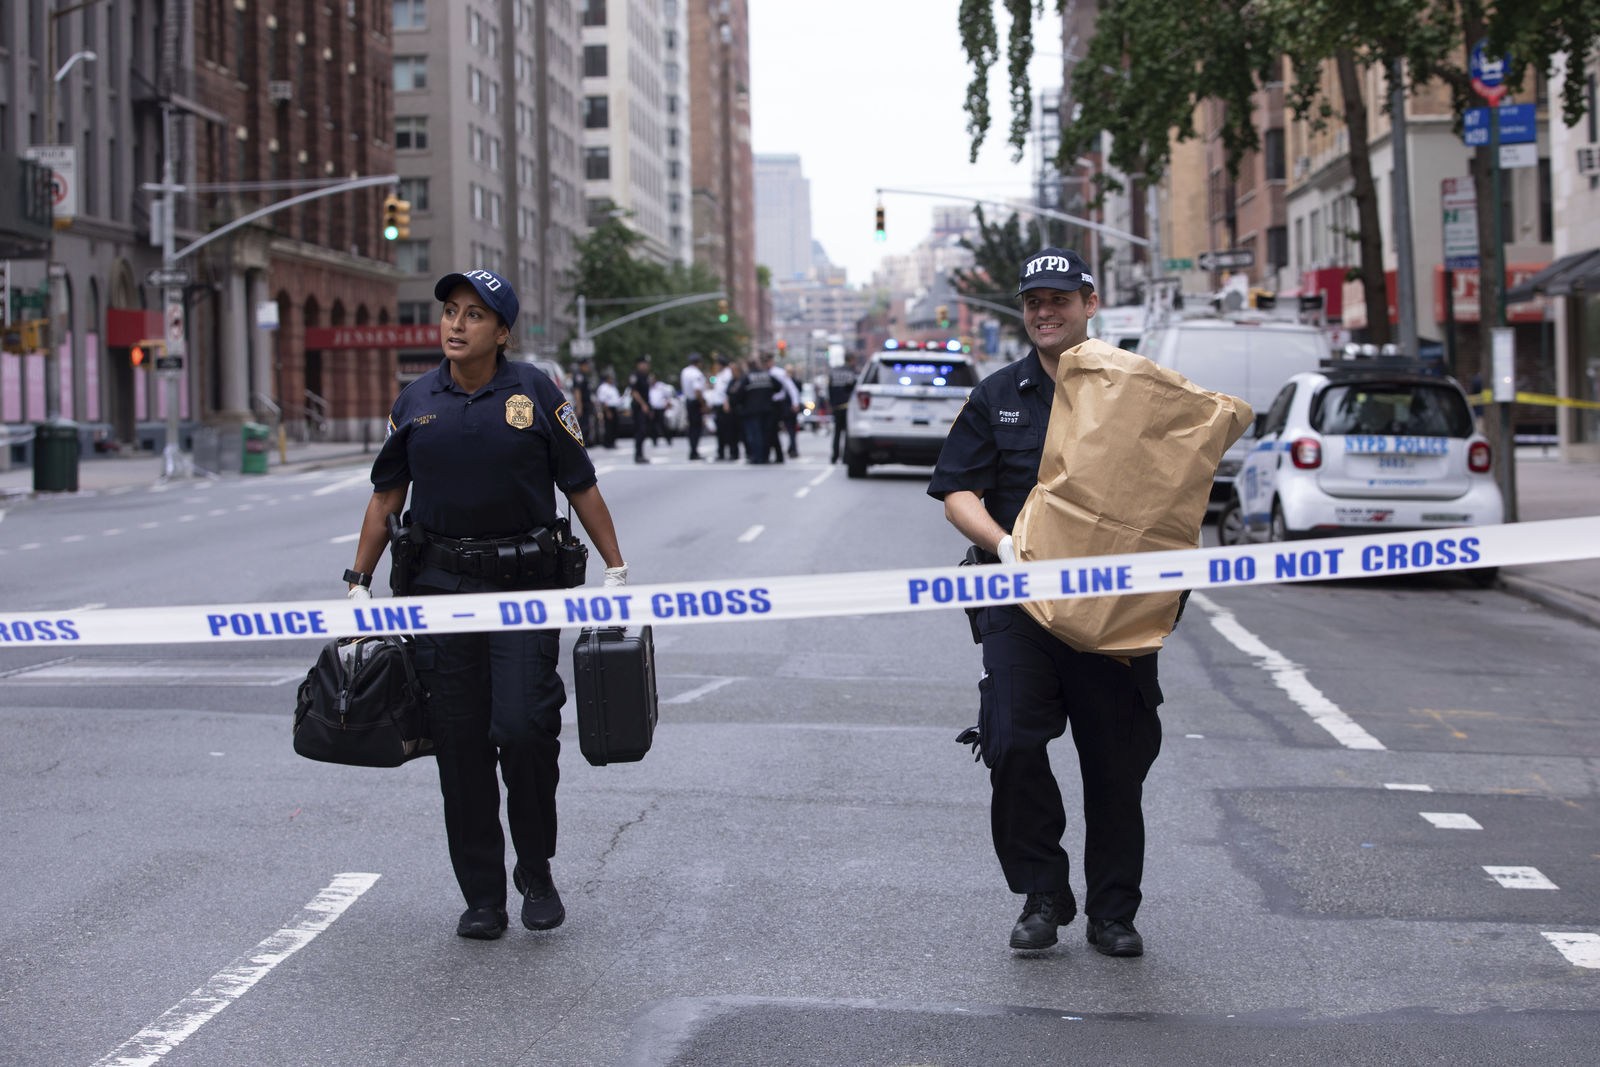 An investigator carries away a suspicious package as evidence after it was thought to be an explosive device in Manhattan's Chelsea neighborhood Friday, Aug. 16, 2019, in New York. The scare happened about two hours after two abandoned objects that looked like pressure cookers prompted an evacuation of a major transit hub in lower Manhattan. The police bomb squad later determined they were not explosives. (AP Photo/Kevin Hagen).